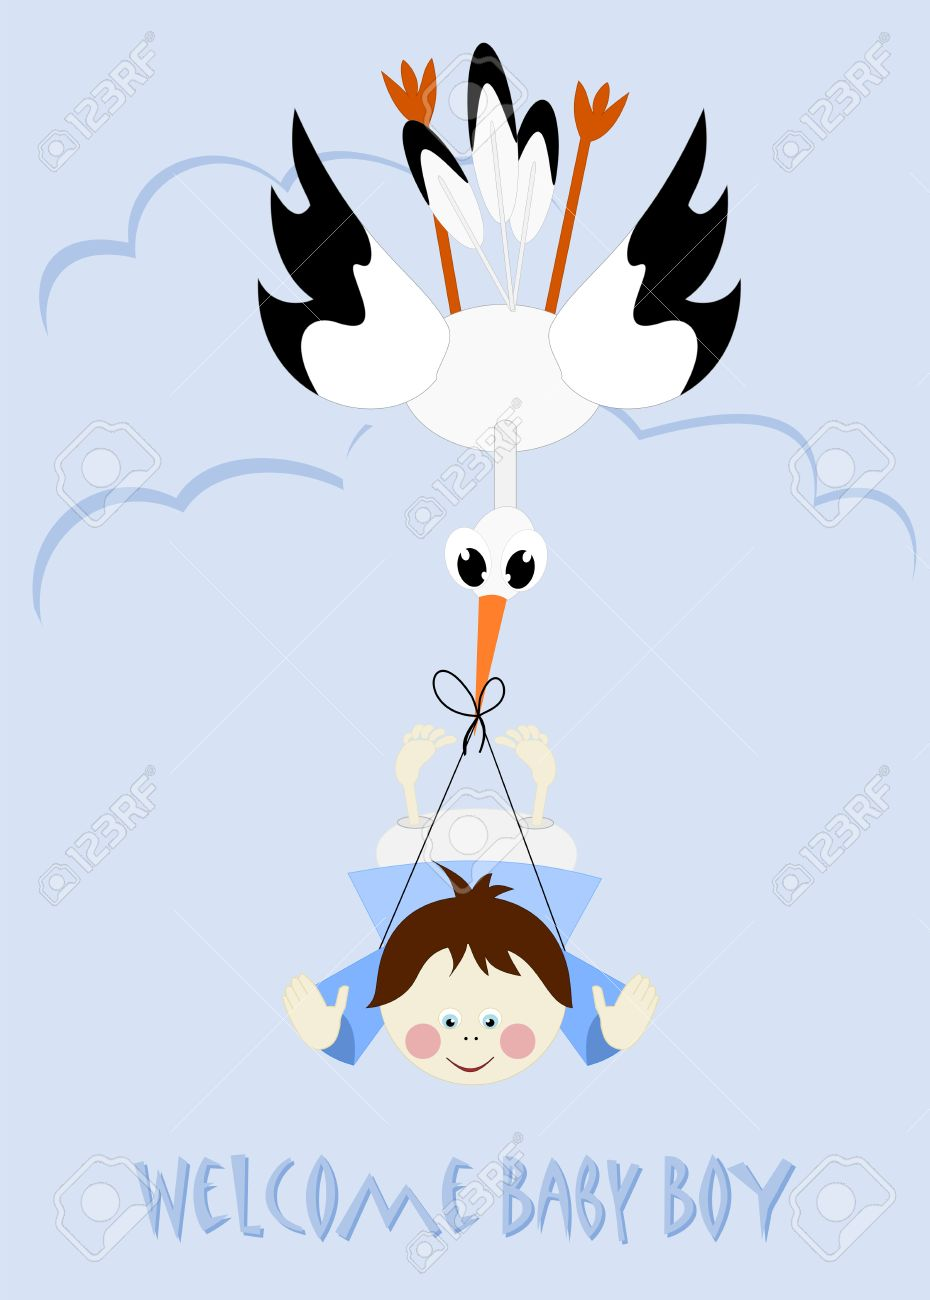 baby boy and stork welcome baby boy royalty free cliparts vectors